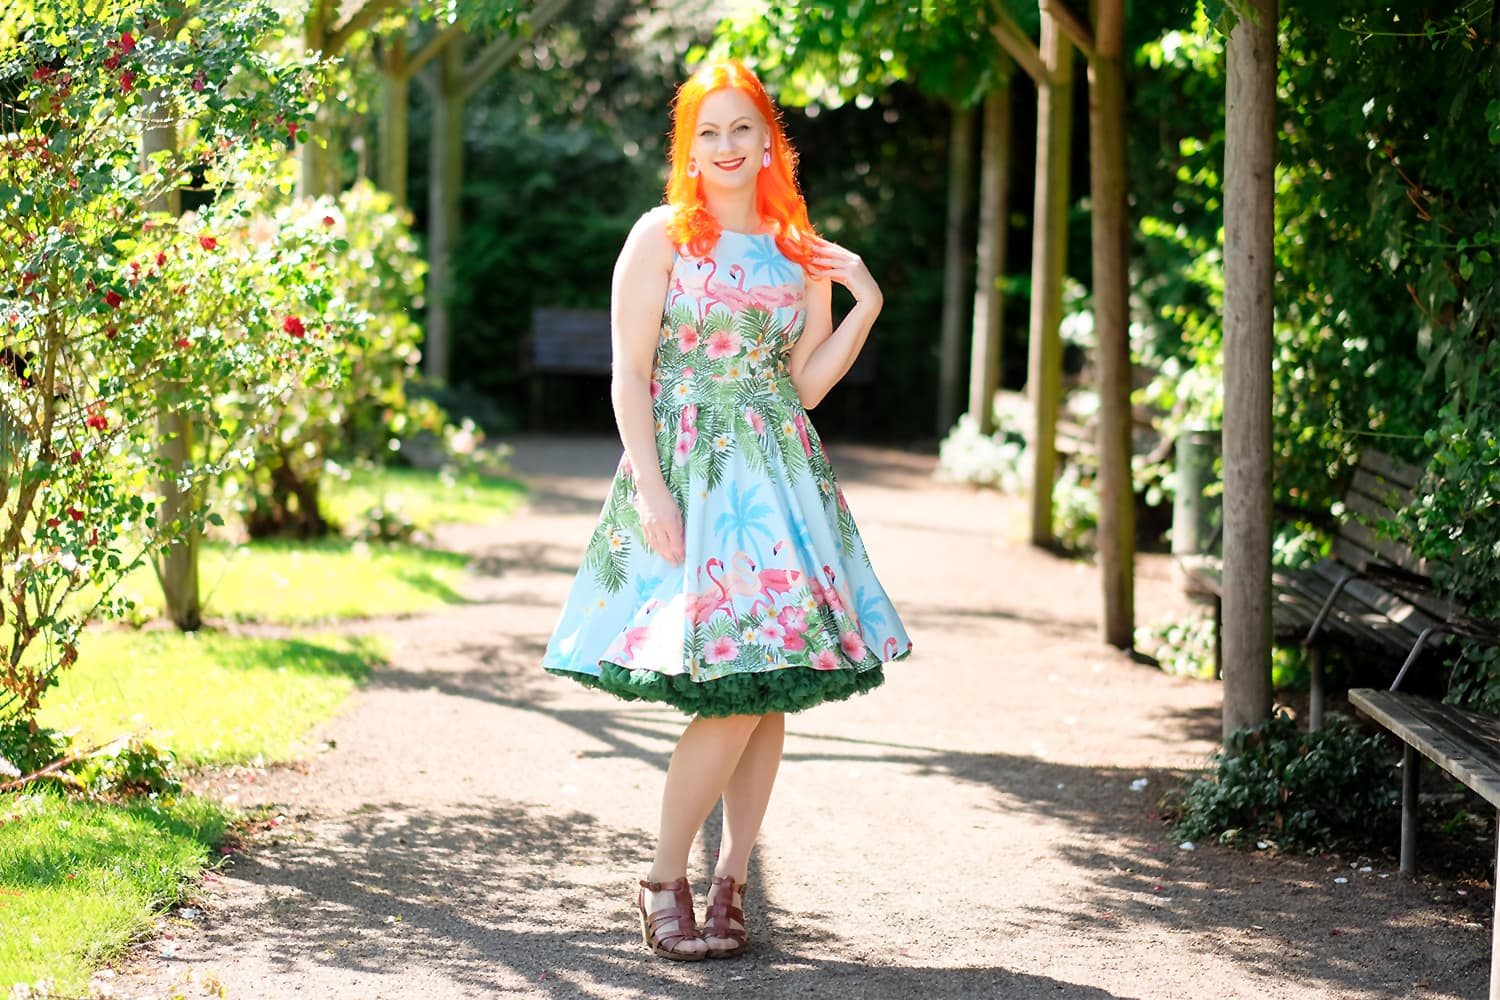 En Lady V London Flamingo border dress og et Petticoat fra Malco Modes